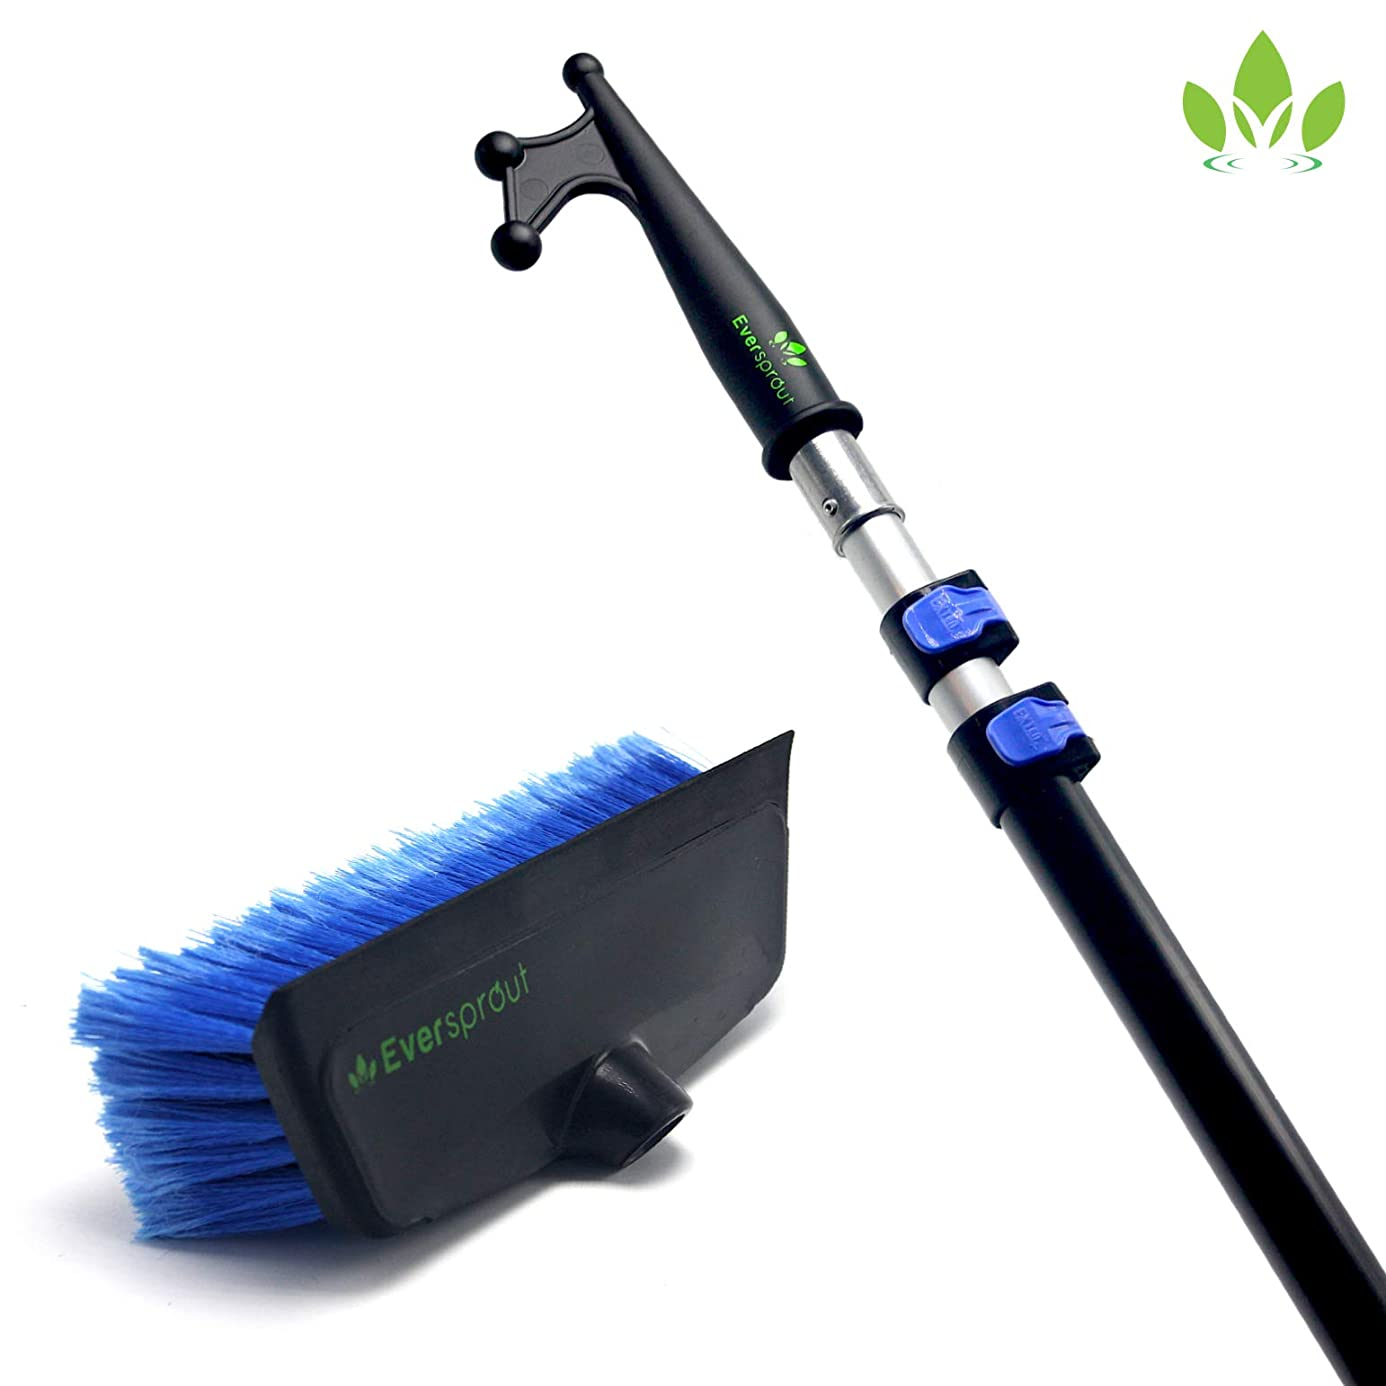 EVERSPROUT Boat Hook & Scrub Brush Kit | Soft-Bristle Deck Brush with Built-in Bumper Prevents Scratching | Durable, Lightweight Boat Hook | Floating Design (Pole Optional)